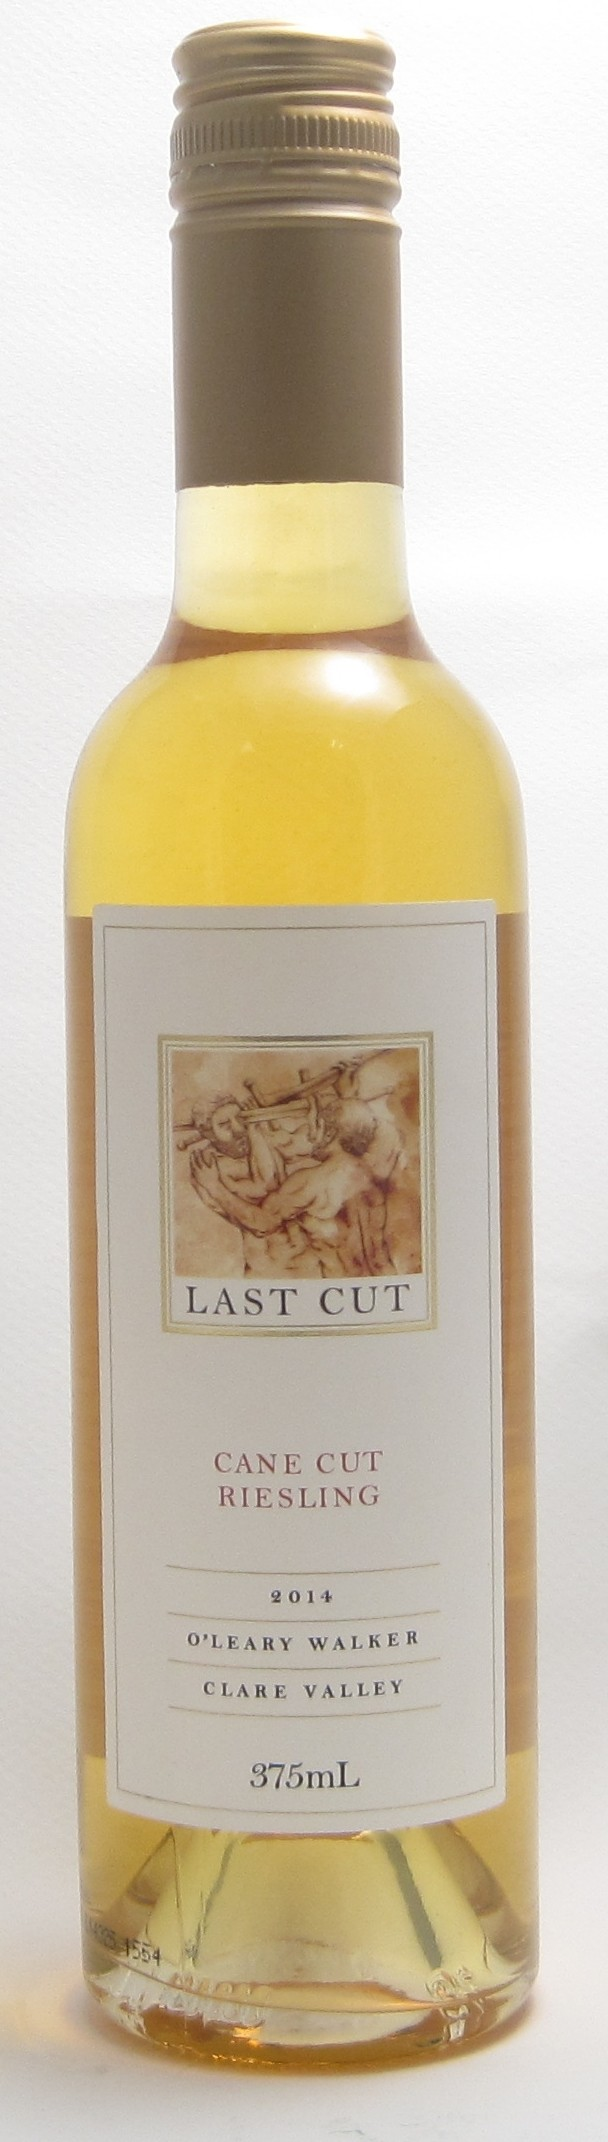 O'Leary Walker 'Last Cut' Riesling